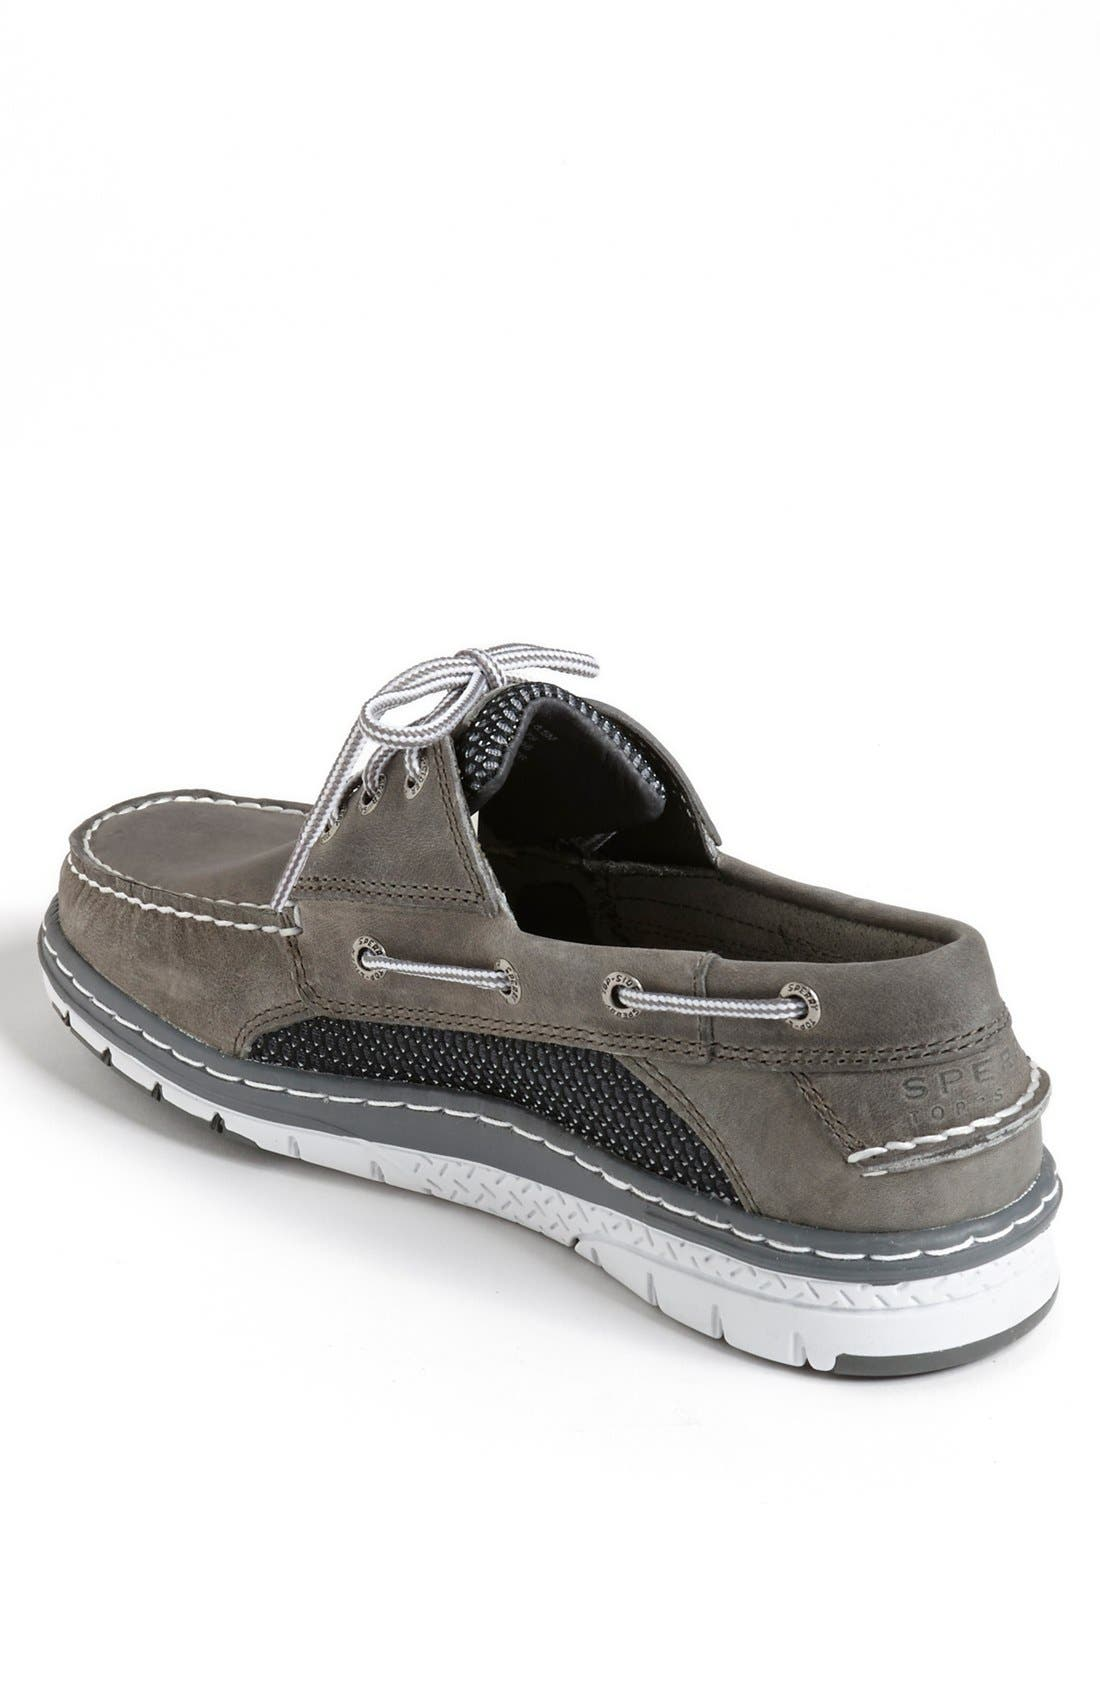 'Billfish Ultralite' Boat Shoe,                             Alternate thumbnail 25, color,